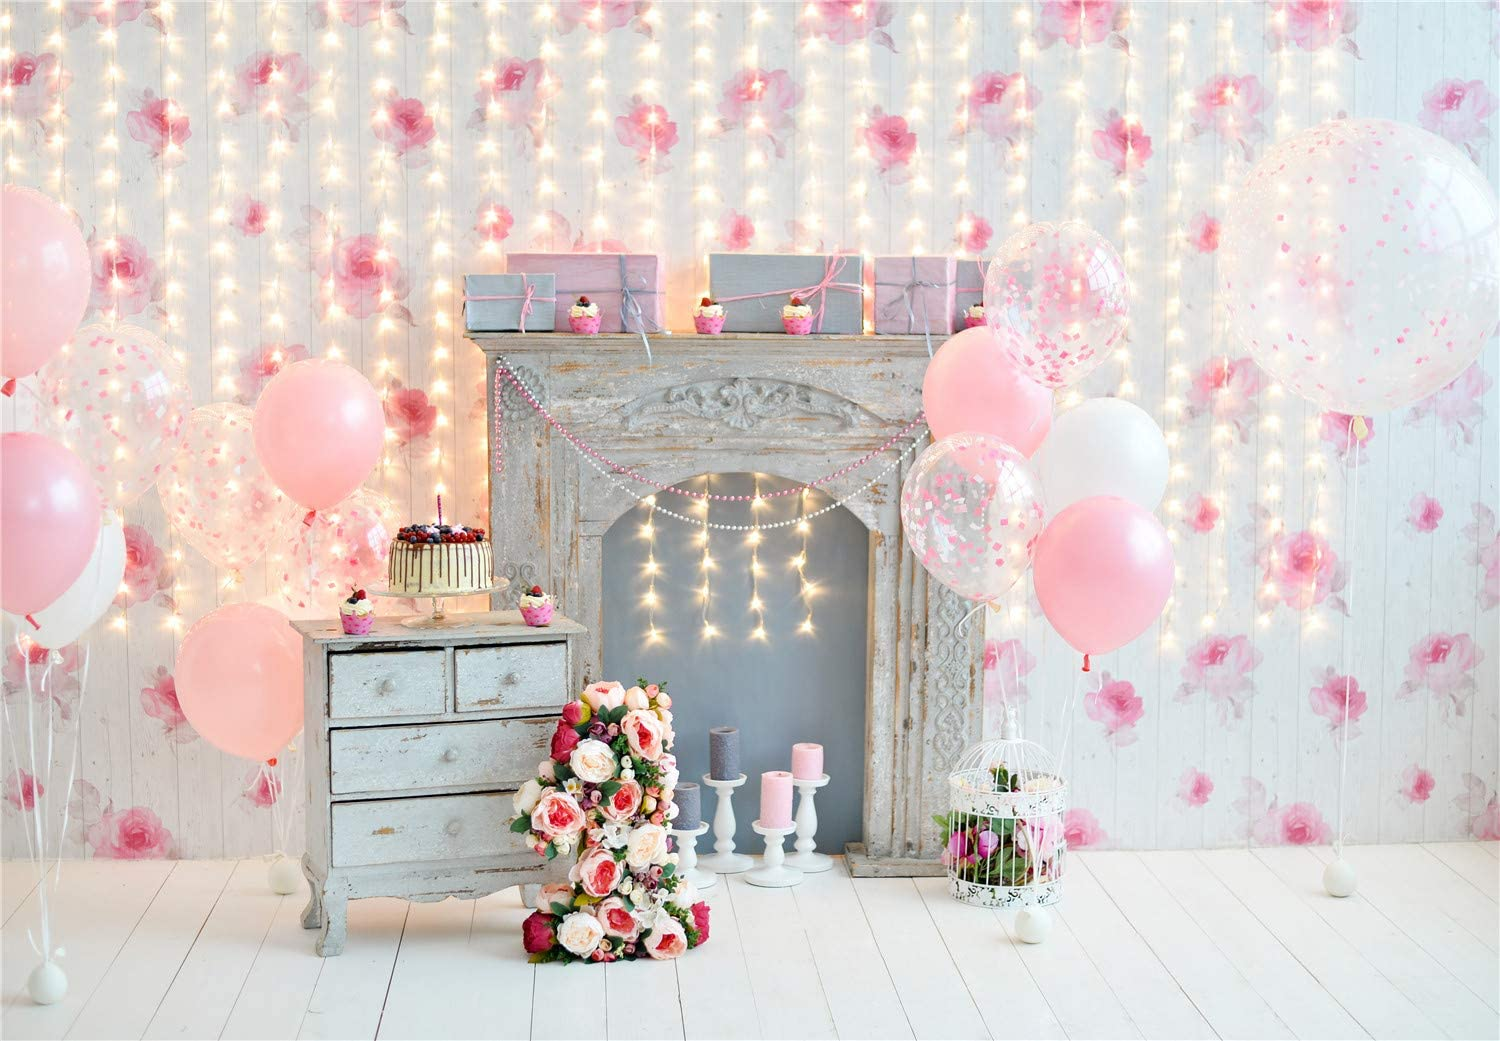 LB 7x5ft Baby Kids Birthday Photography Backdrop Balloon Flower Gift Cake Party Photo Background Studio Prop Customized SDX1012